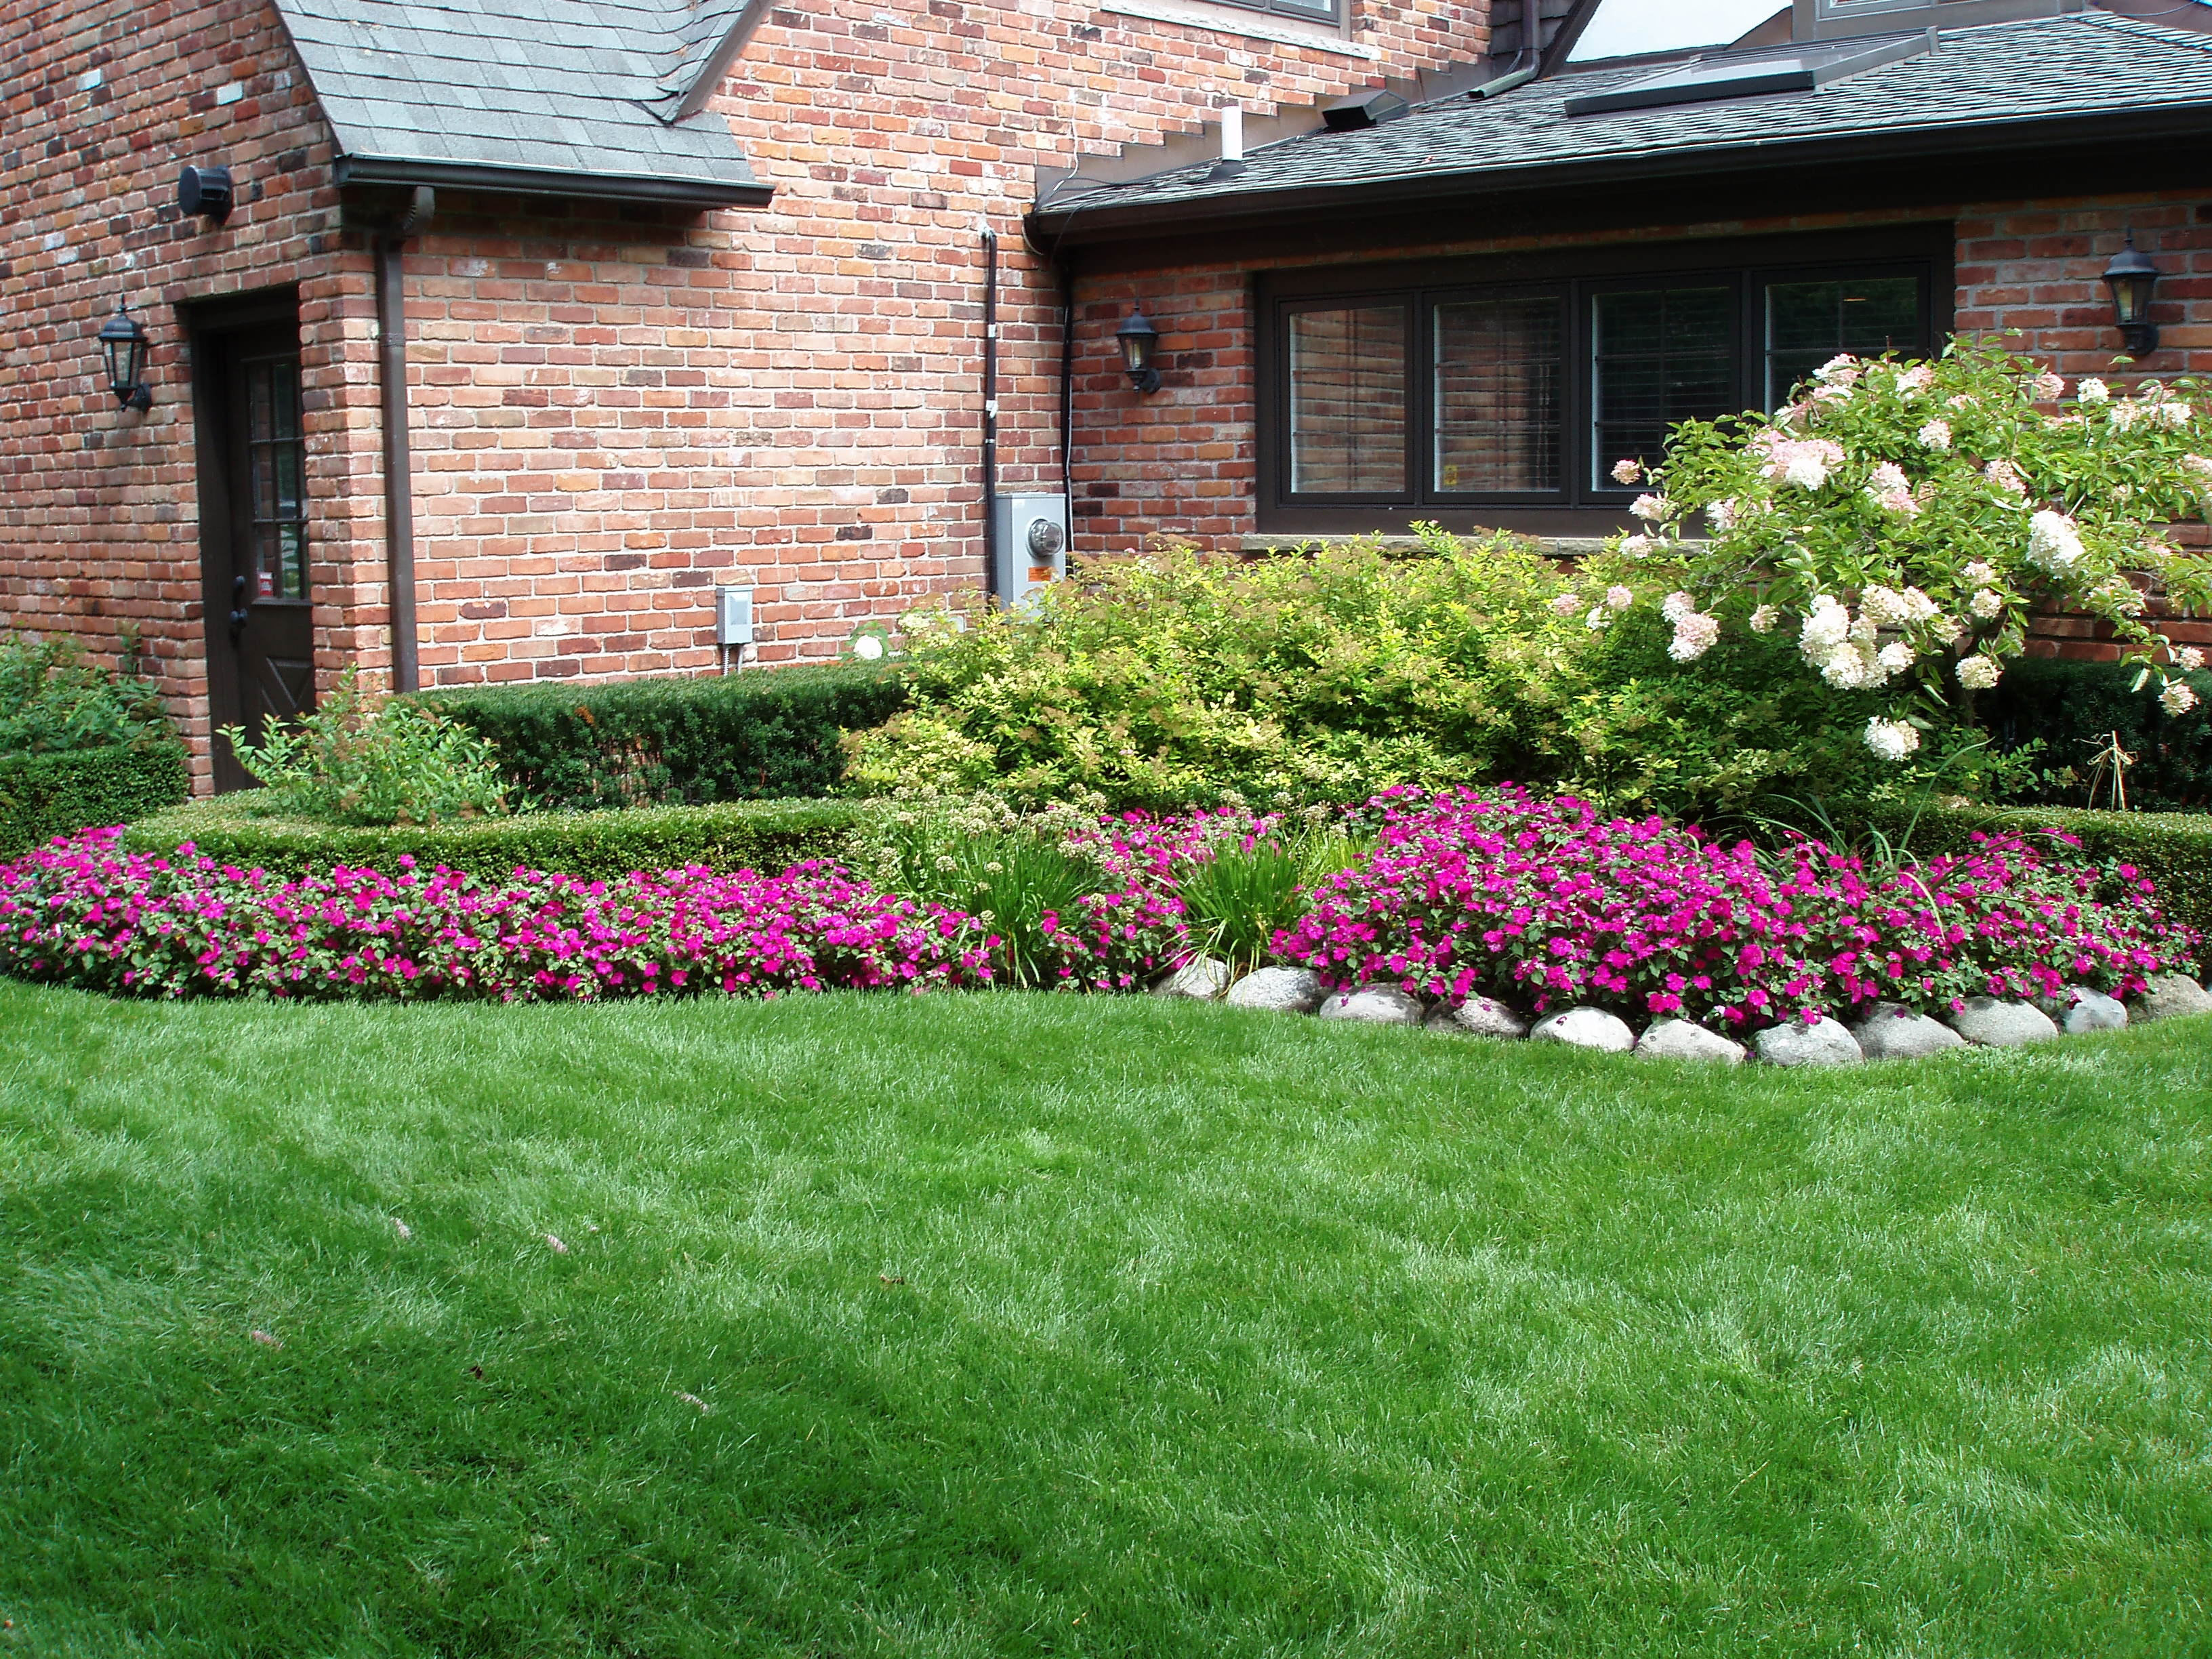 Perennials total lawn care inc full lawn maintenance for Front lawn ideas